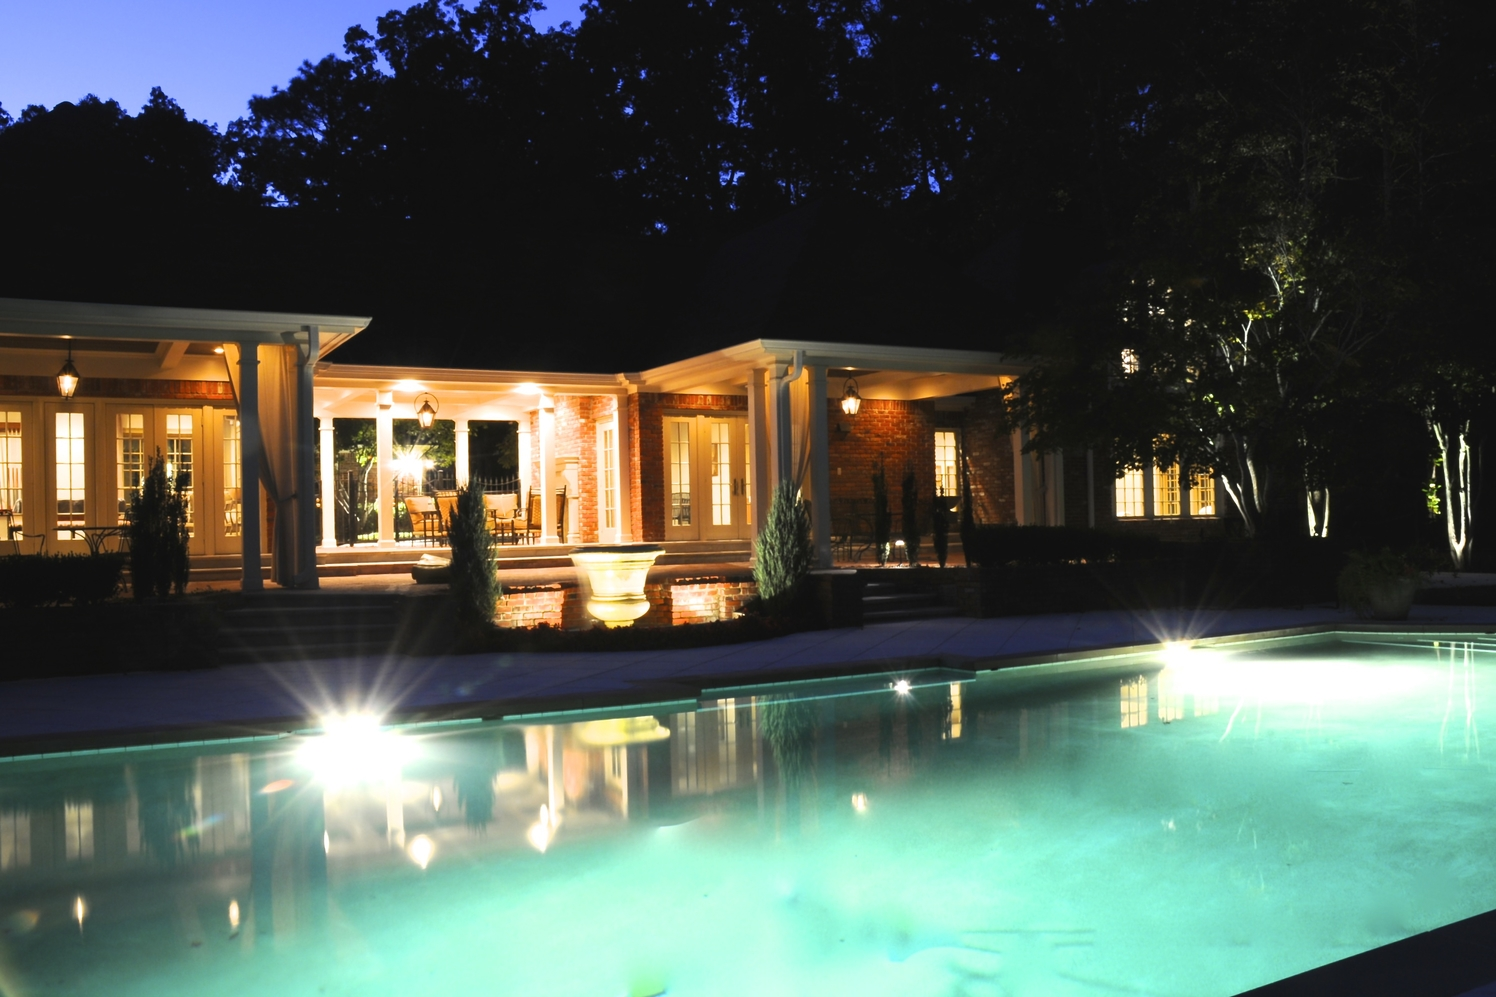 Satterfield Pool - Reno/Addition